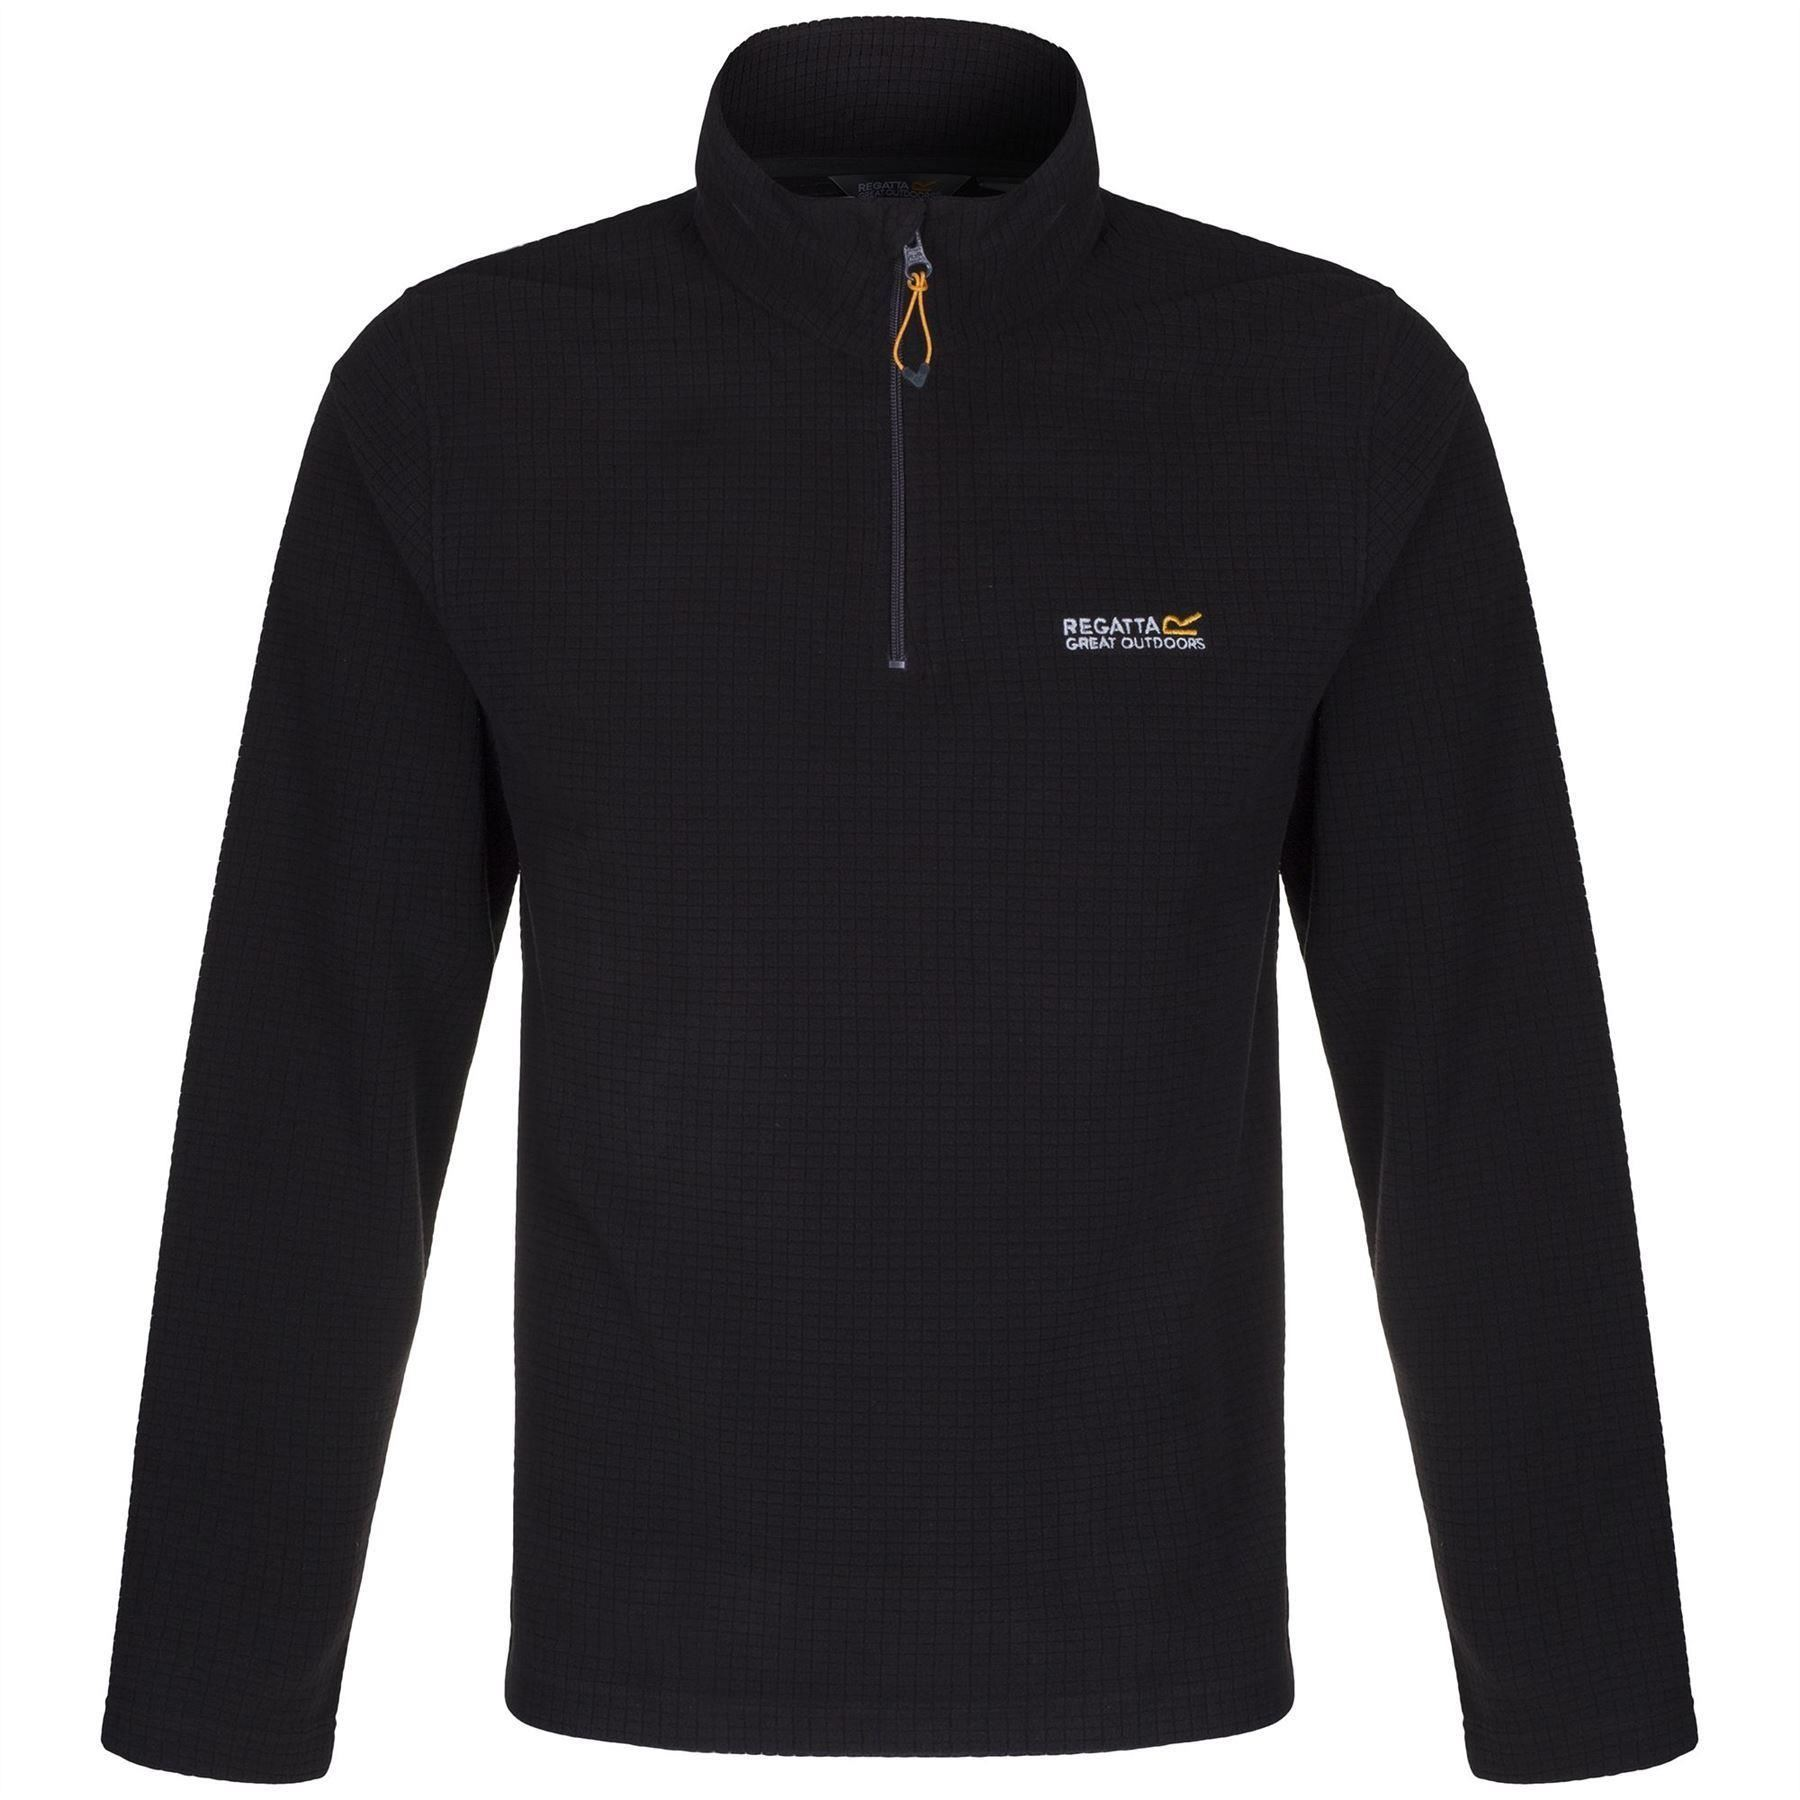 Regatta-Elgon-para-hombre-Half-Zip-Fleece-Pullover-Jumper-Top-RMA236 miniatura 8